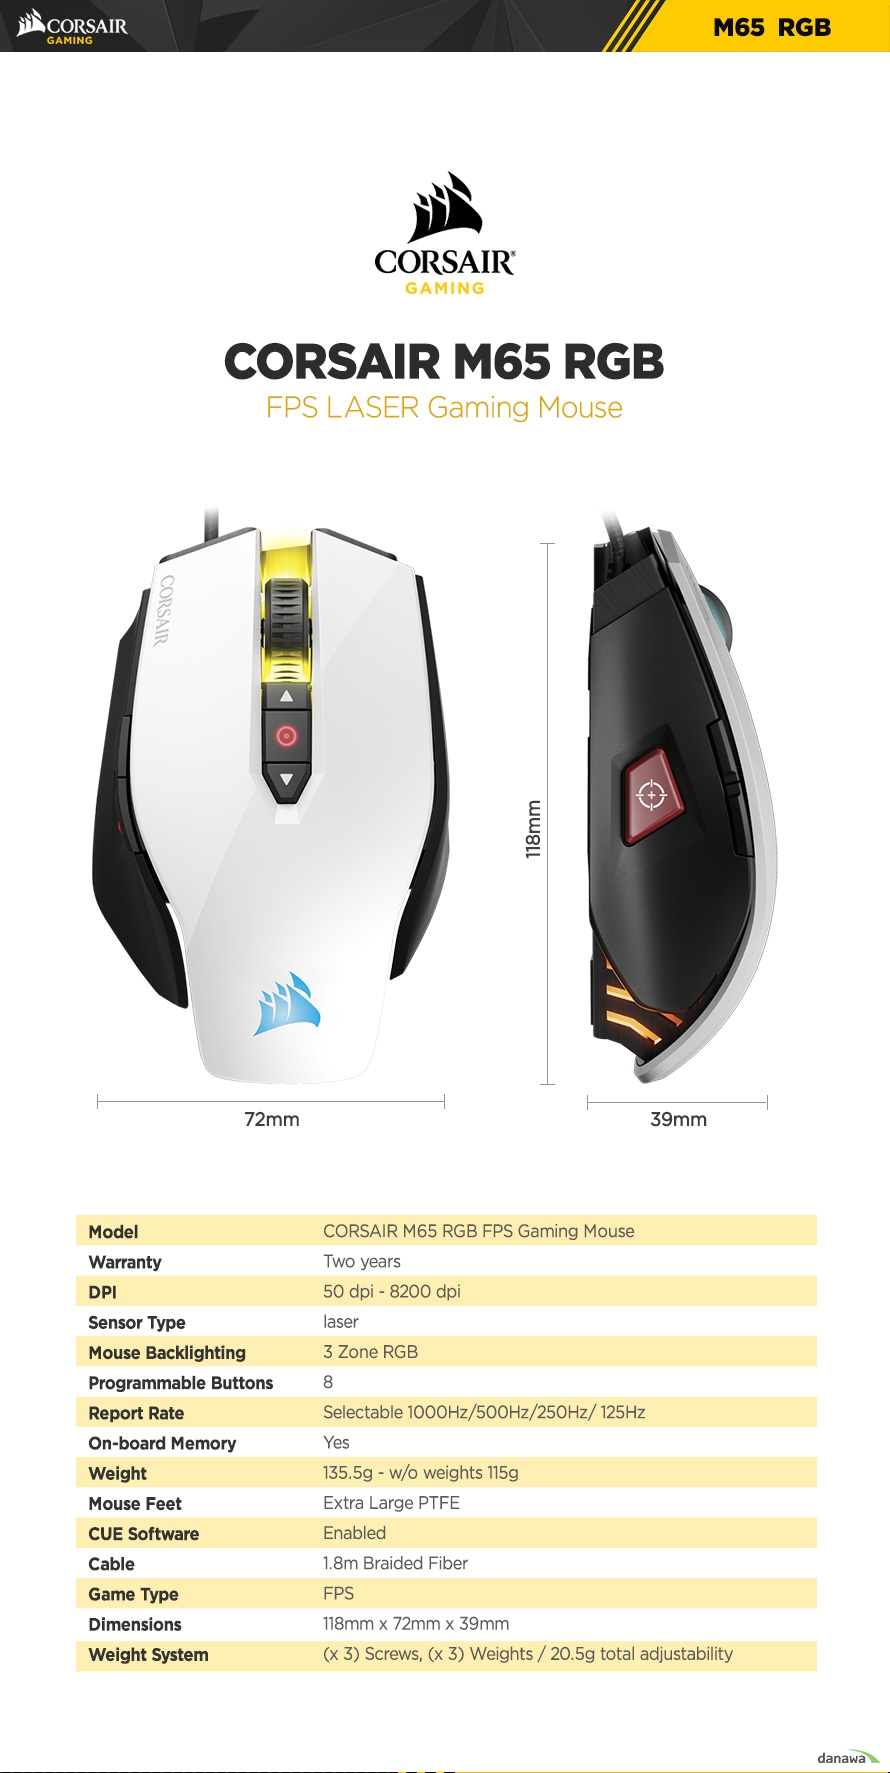 corsair m65 rgb fps LASER gaming mouse Warranty Two years DPI 50 dpi - 8200 dpi Sensor Type lASER Mouse Backlighting 3 Zone RGB Programmable Buttons 8 Report Rate Selectable 1000Hz/500Hz/250Hz/125hz On-board Memory Yes Weight 135.5g - w/o weights 115g Mouse Feet Extra Large PTFE CUE Software Enabled Cable 1.8m Braided Fiber Game Type FPS  Dimensions 118mm x 72mm x 39mm Weight System (x 3) Screws, (x 3) Weights 20.5g total adjustability